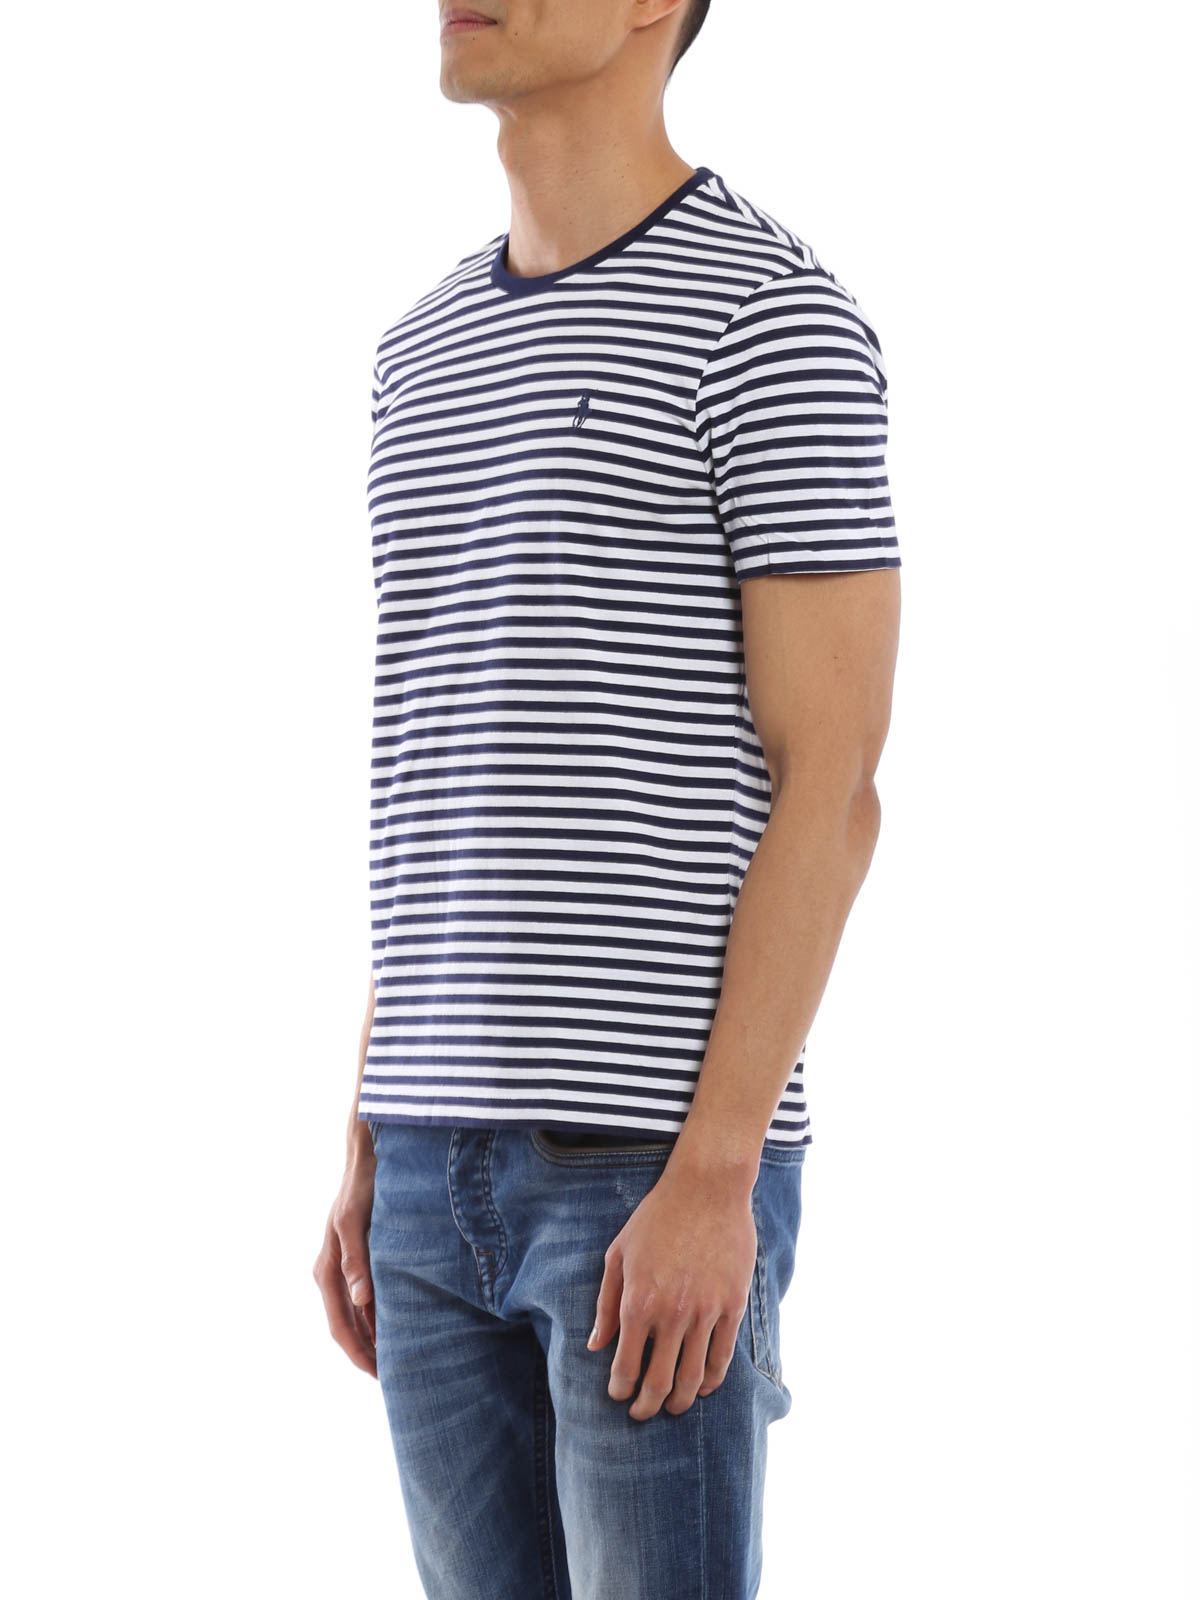 best loved 8faf5 30e9c Polo Ralph Lauren - Striped cotton T-shirt - t-shirts - A16 ...